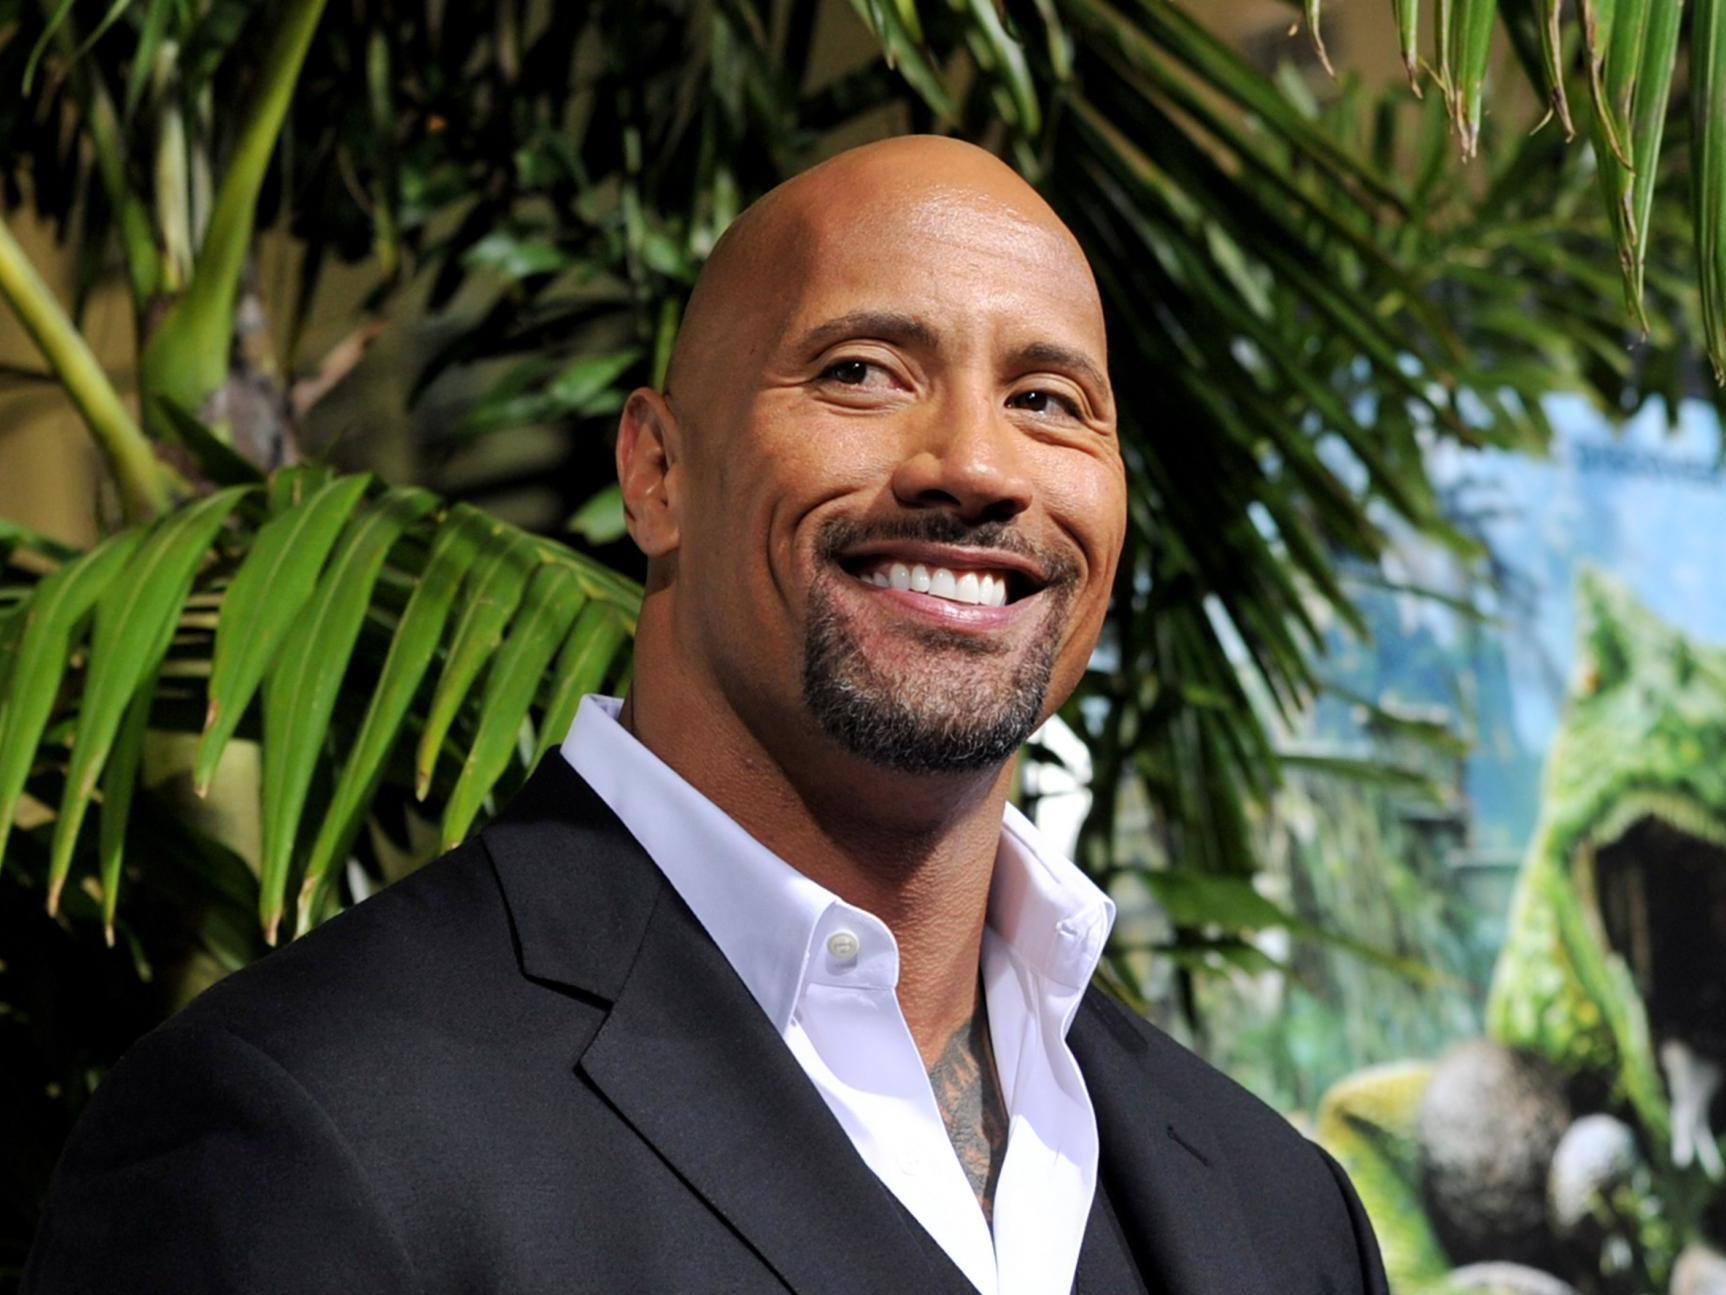 Dwayne Johnson tops list of Hollywood's highest-paid actors of 2020